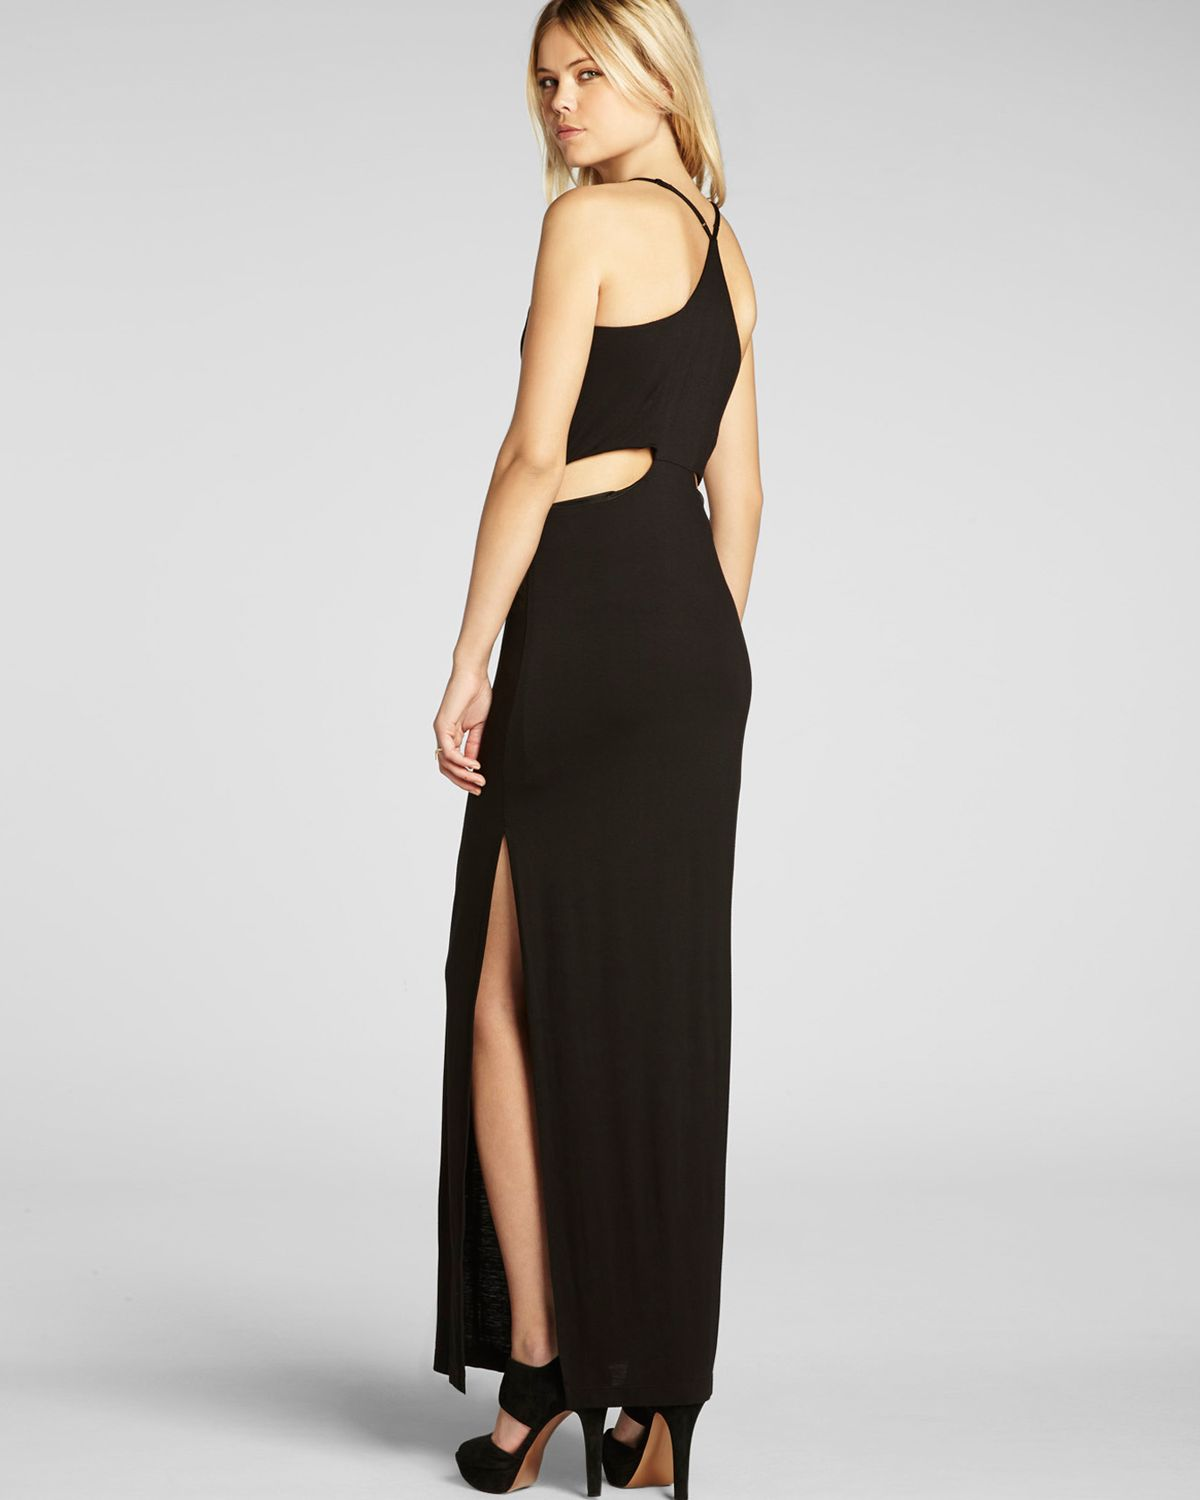 Bcbgeneration Maxi Dress Cutout Waist in Black | Lyst